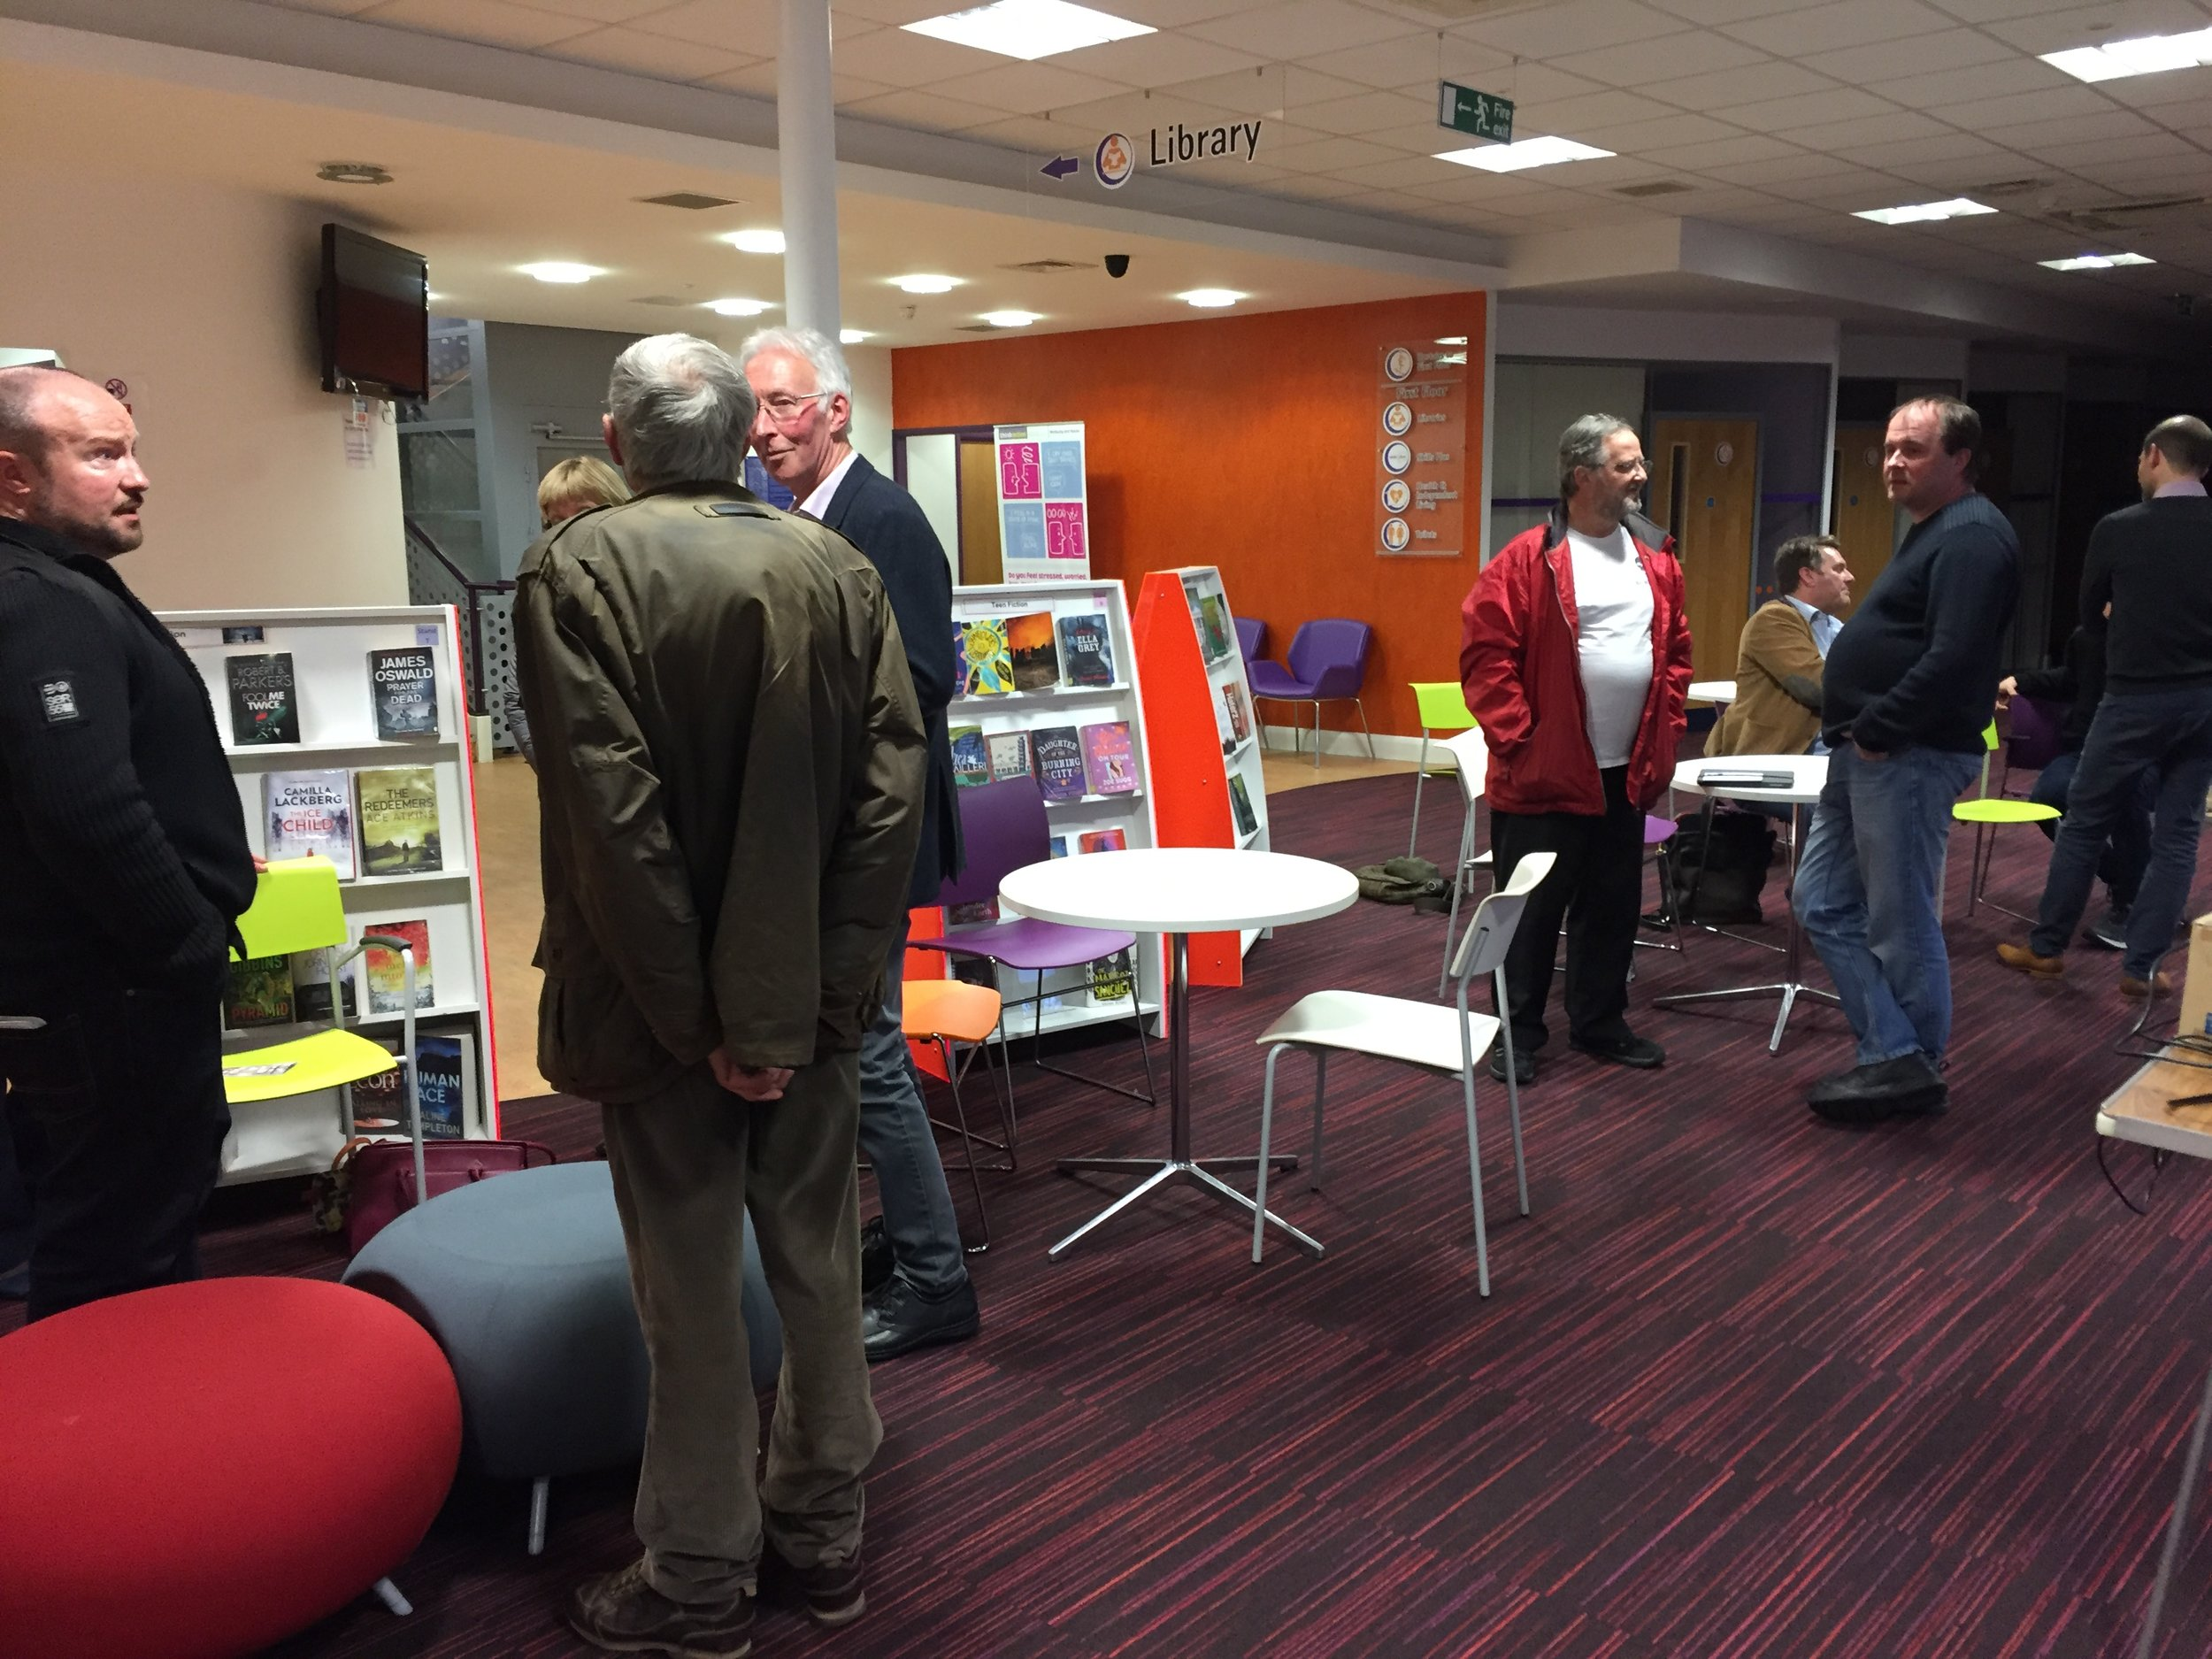 Informal discussions between the community and trustees